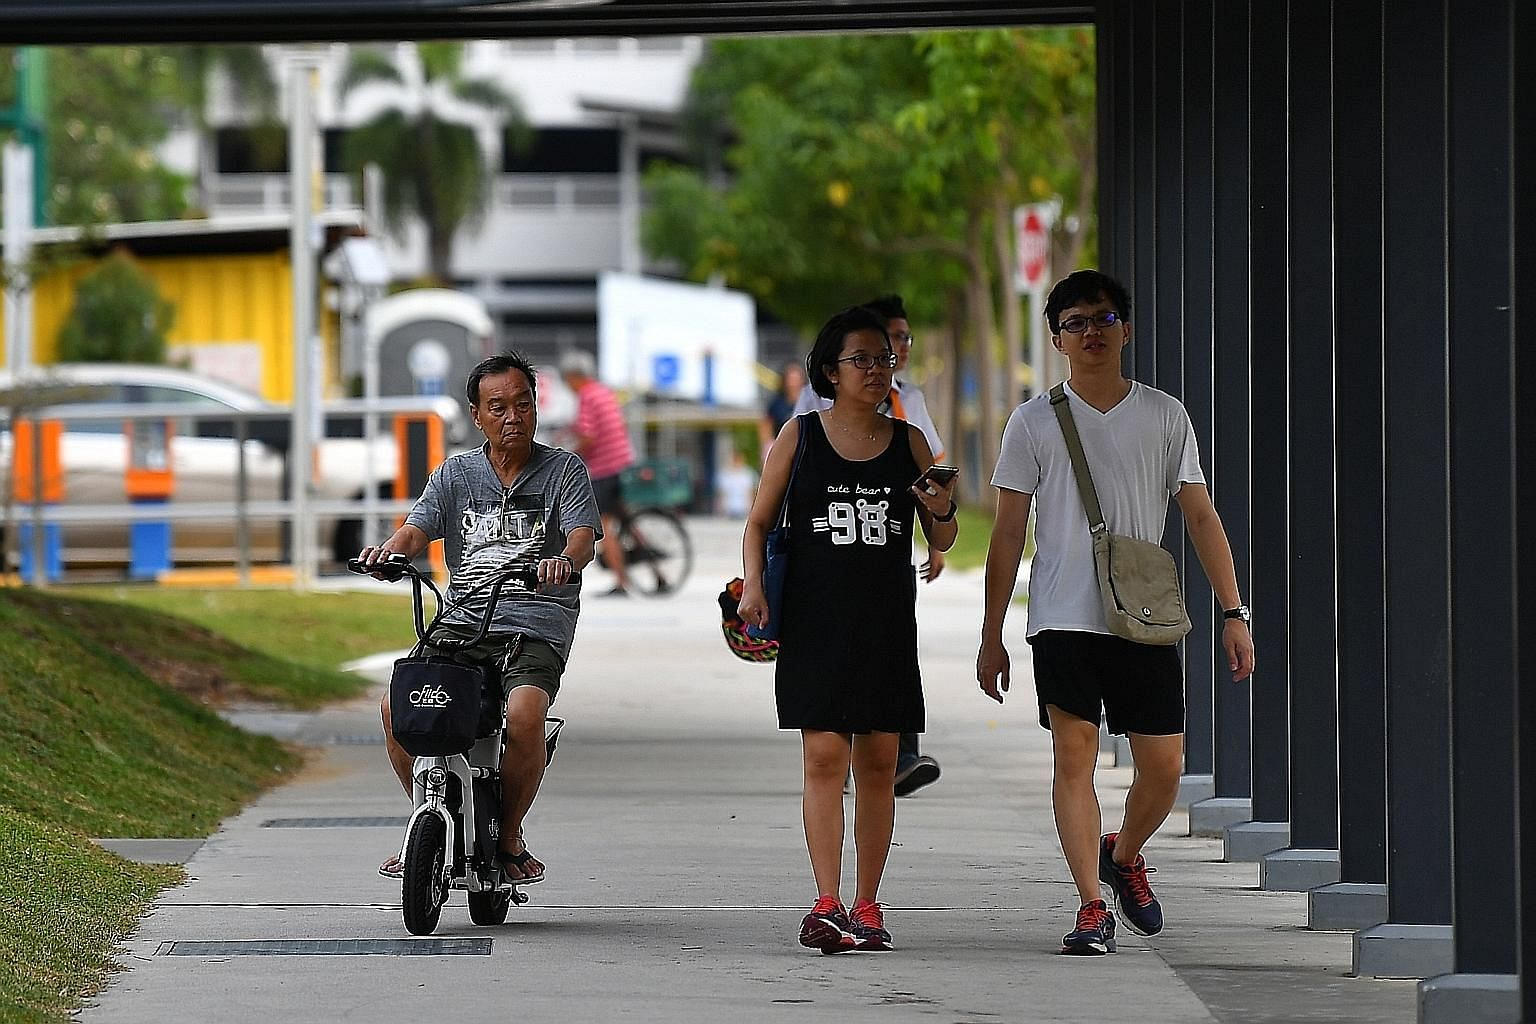 The LTA said it will step up patrols to strictly enforce the zero-tolerance policy towards riding e-scooters on footpaths. The number of registered e-scooters has also gone down to 75,000 in the wake of the ban. ST PHOTO: LIM YAOHUI